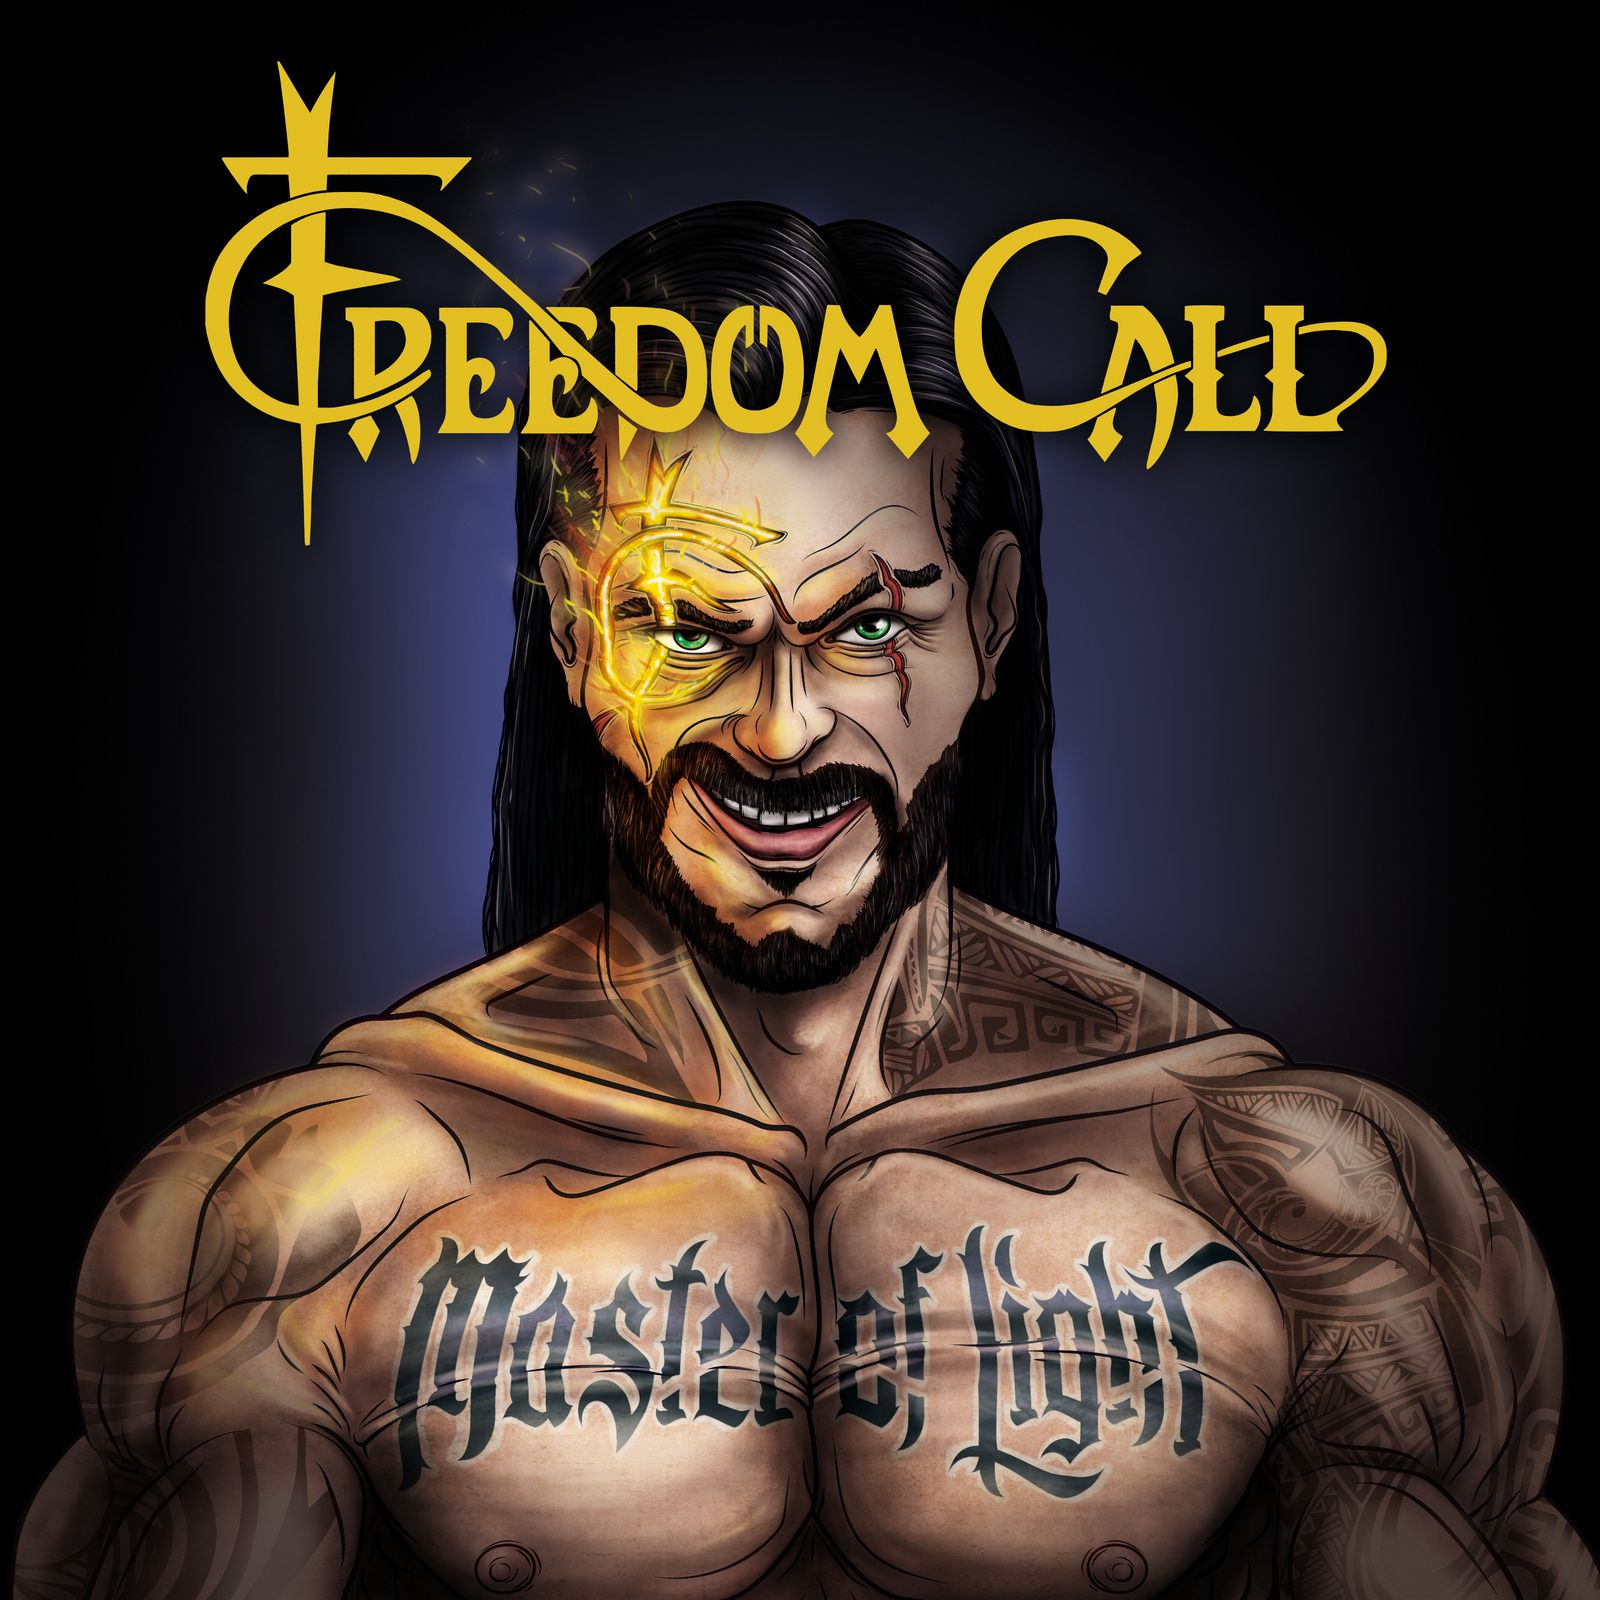 """CD review FREEDOM CALL """"Master of Light"""""""